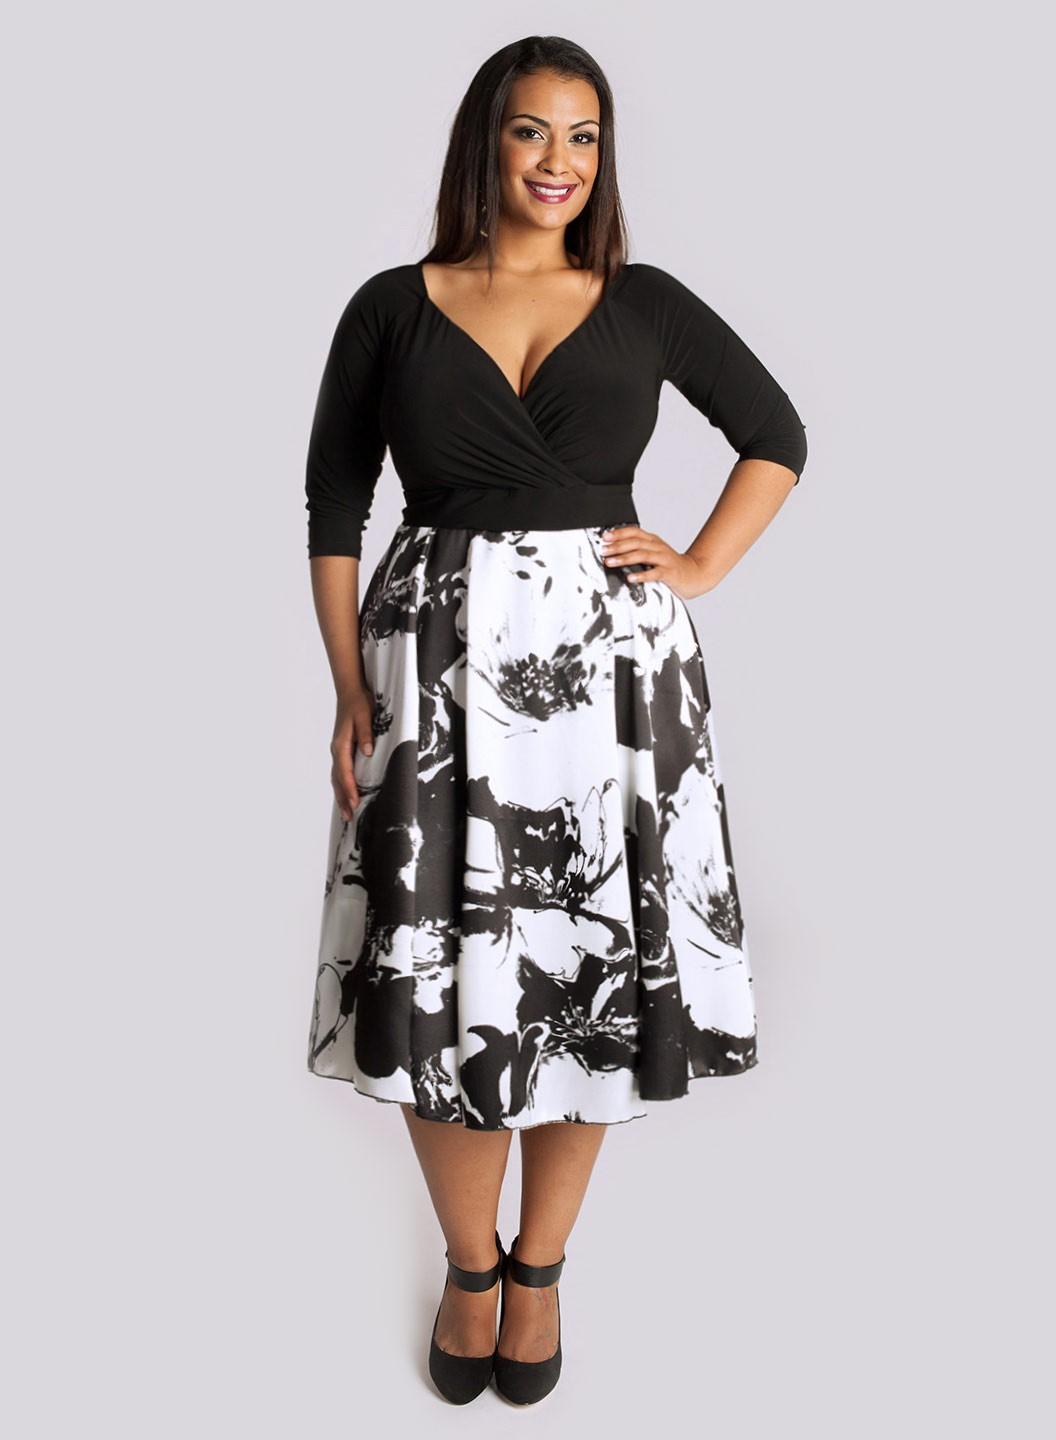 Plus size clothing online ireland